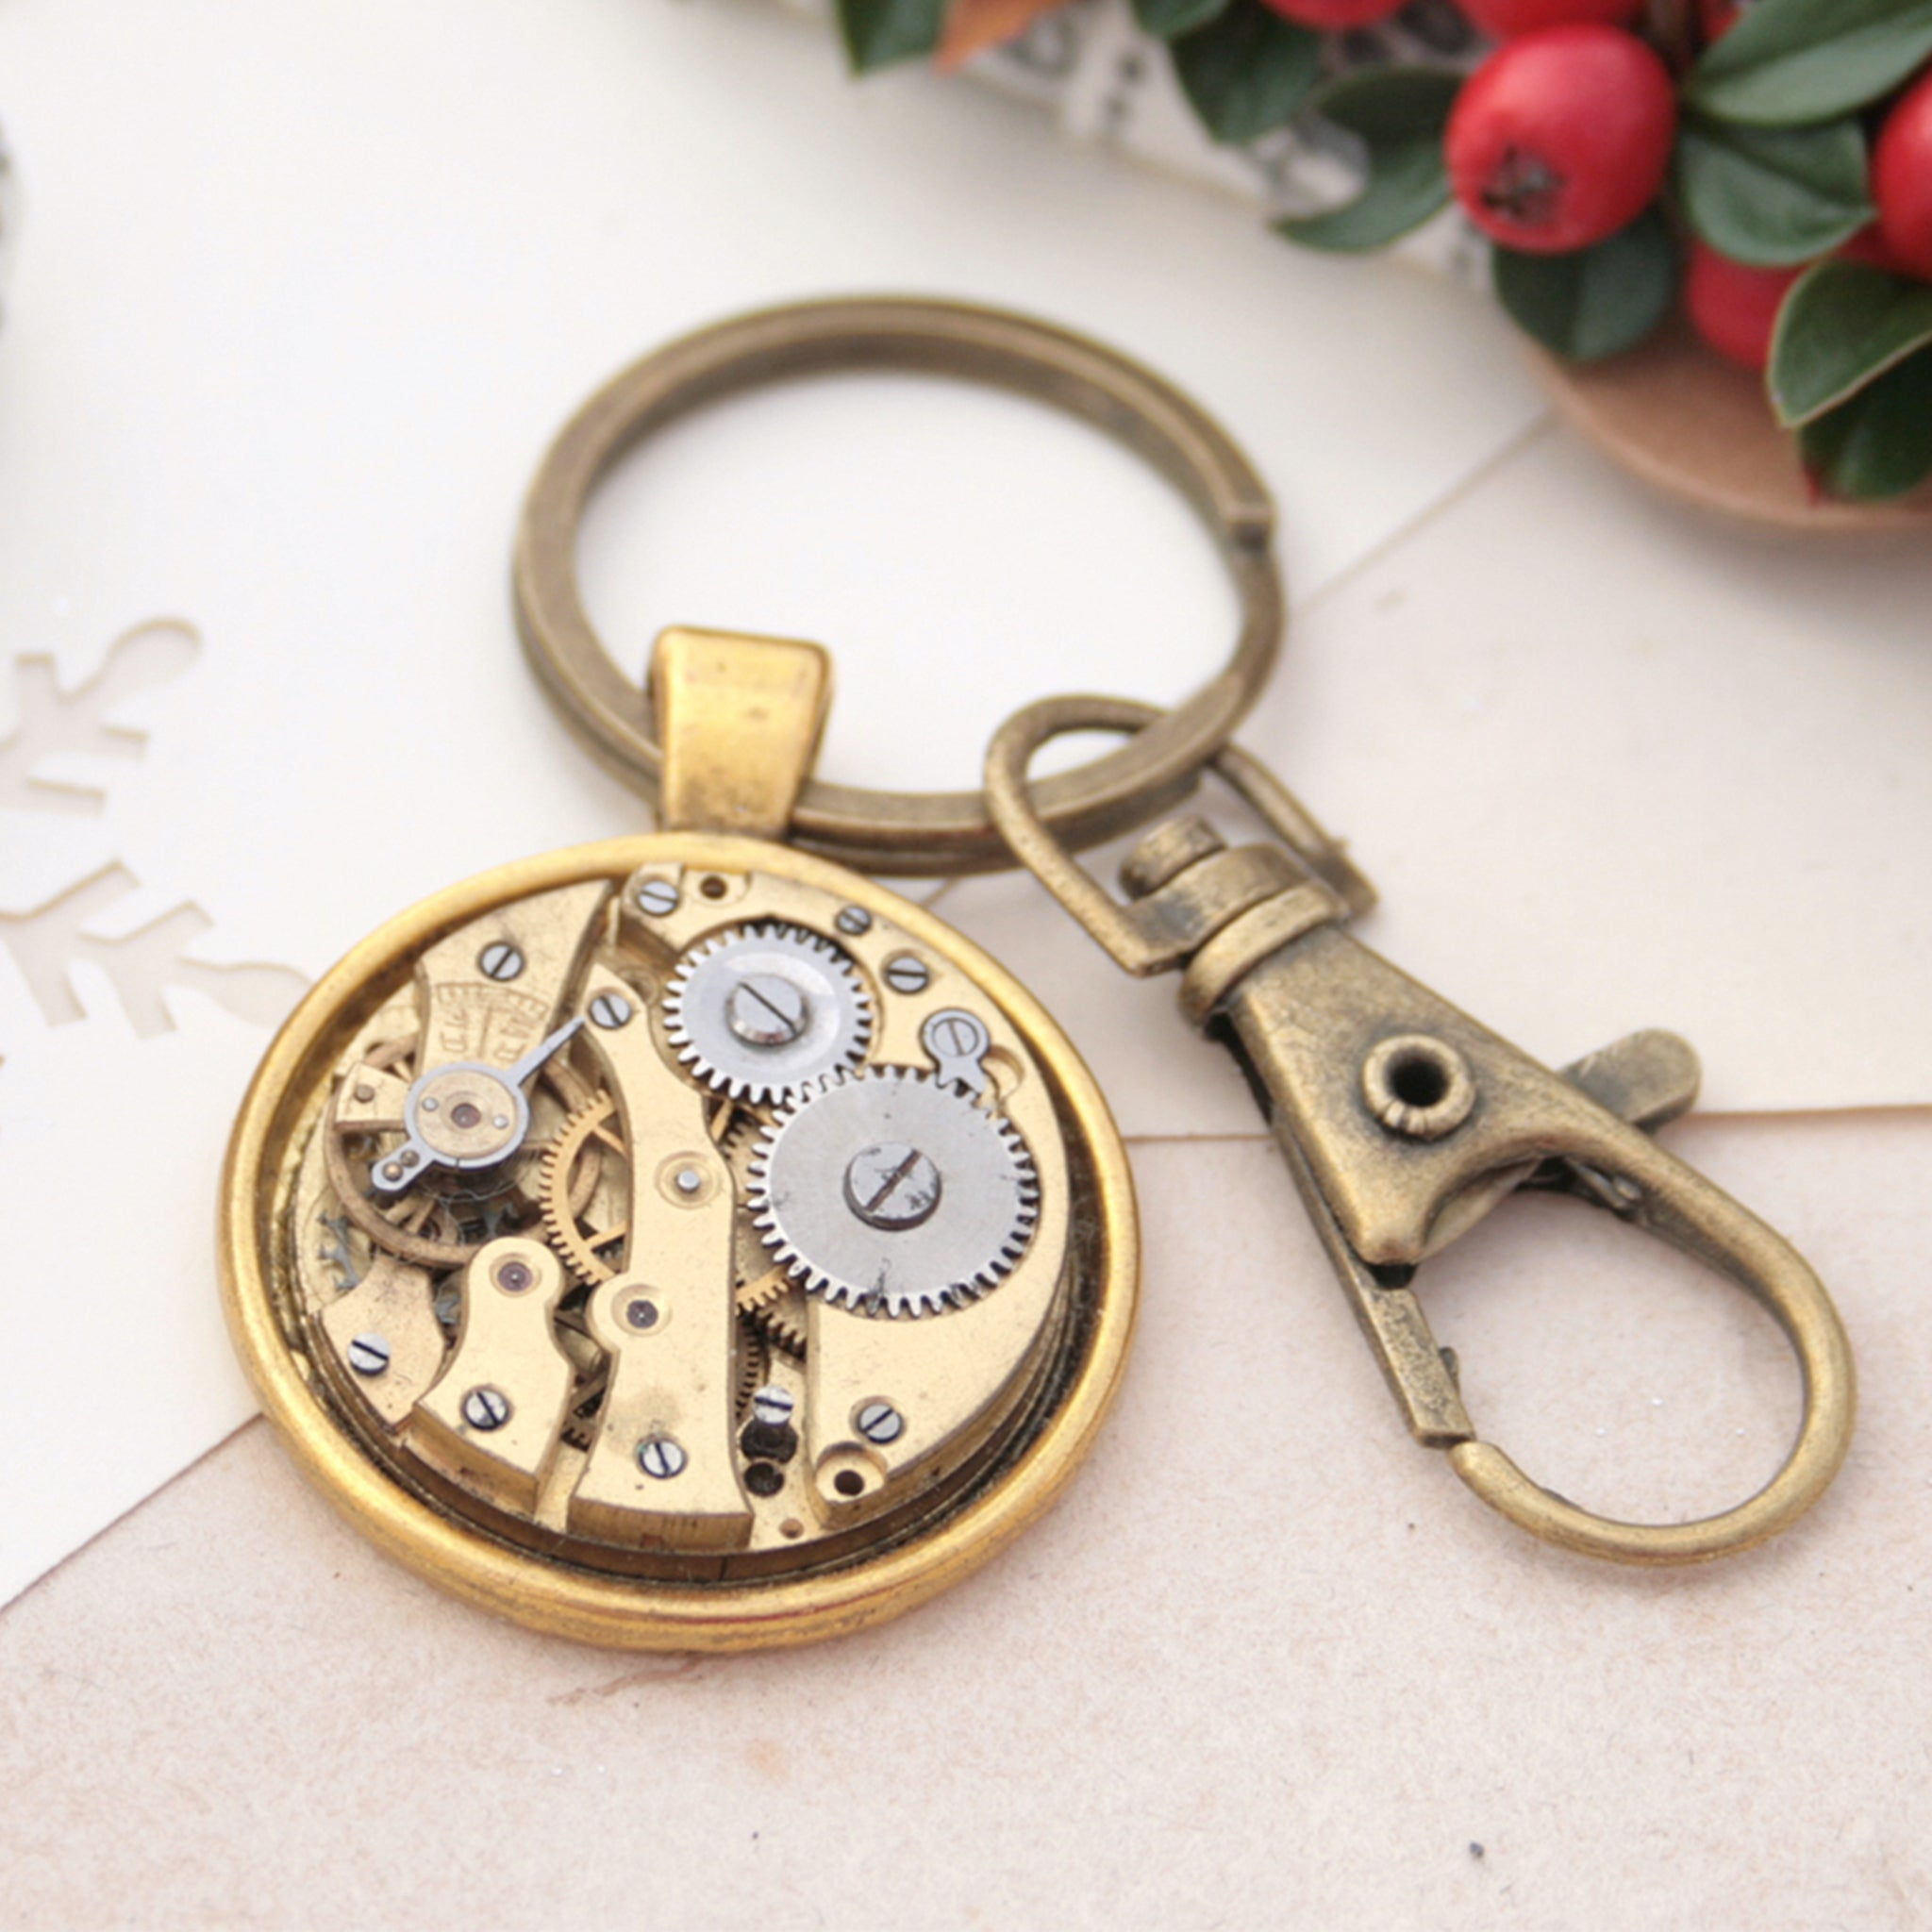 Keyrings for Car Keys made of gold tone watch movement